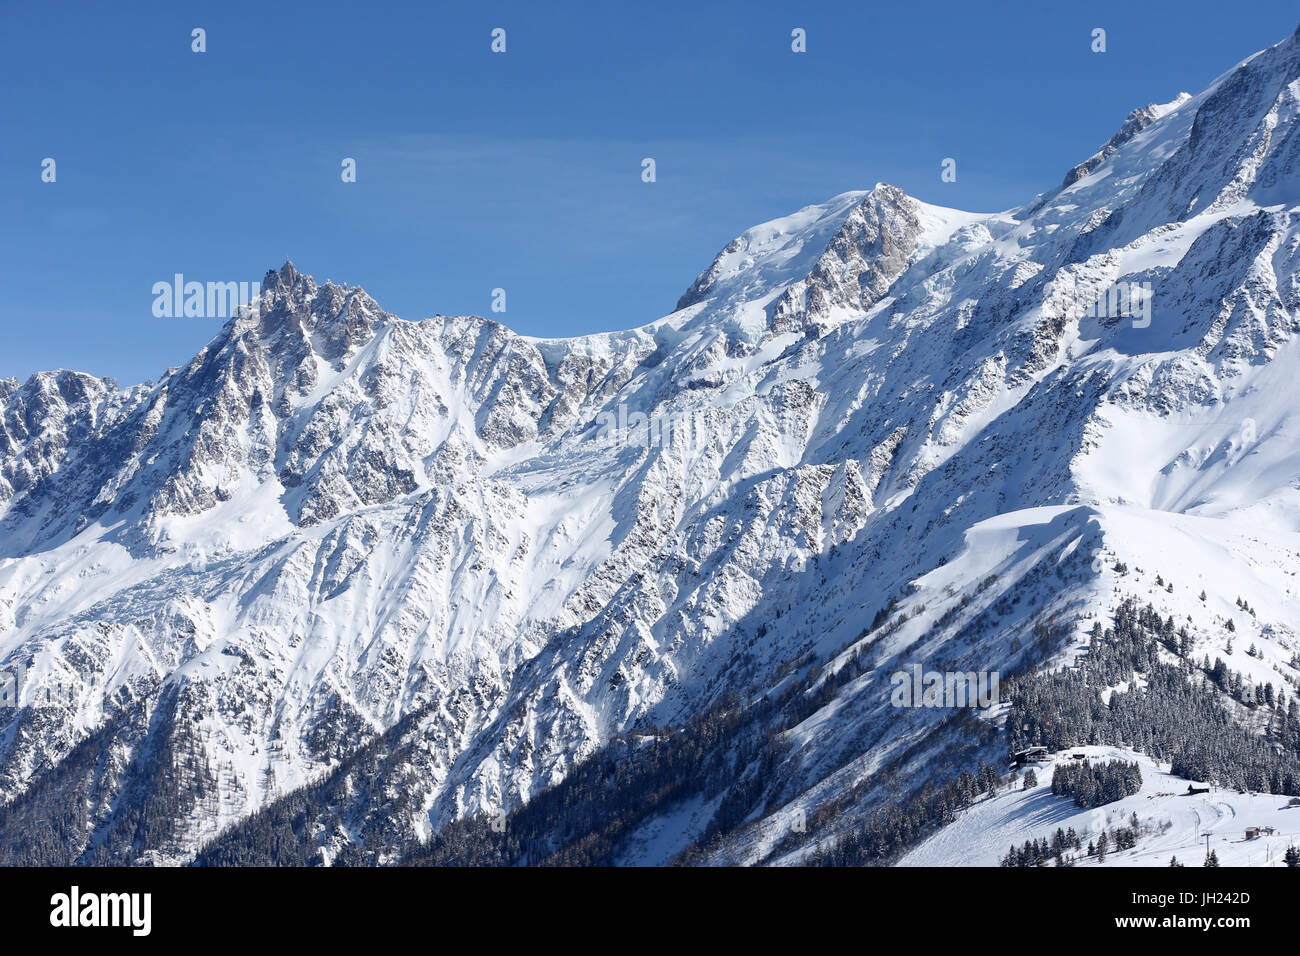 French Alps.  Mont-Blanc massif. Aiguille du Midi.  France. - Stock Image